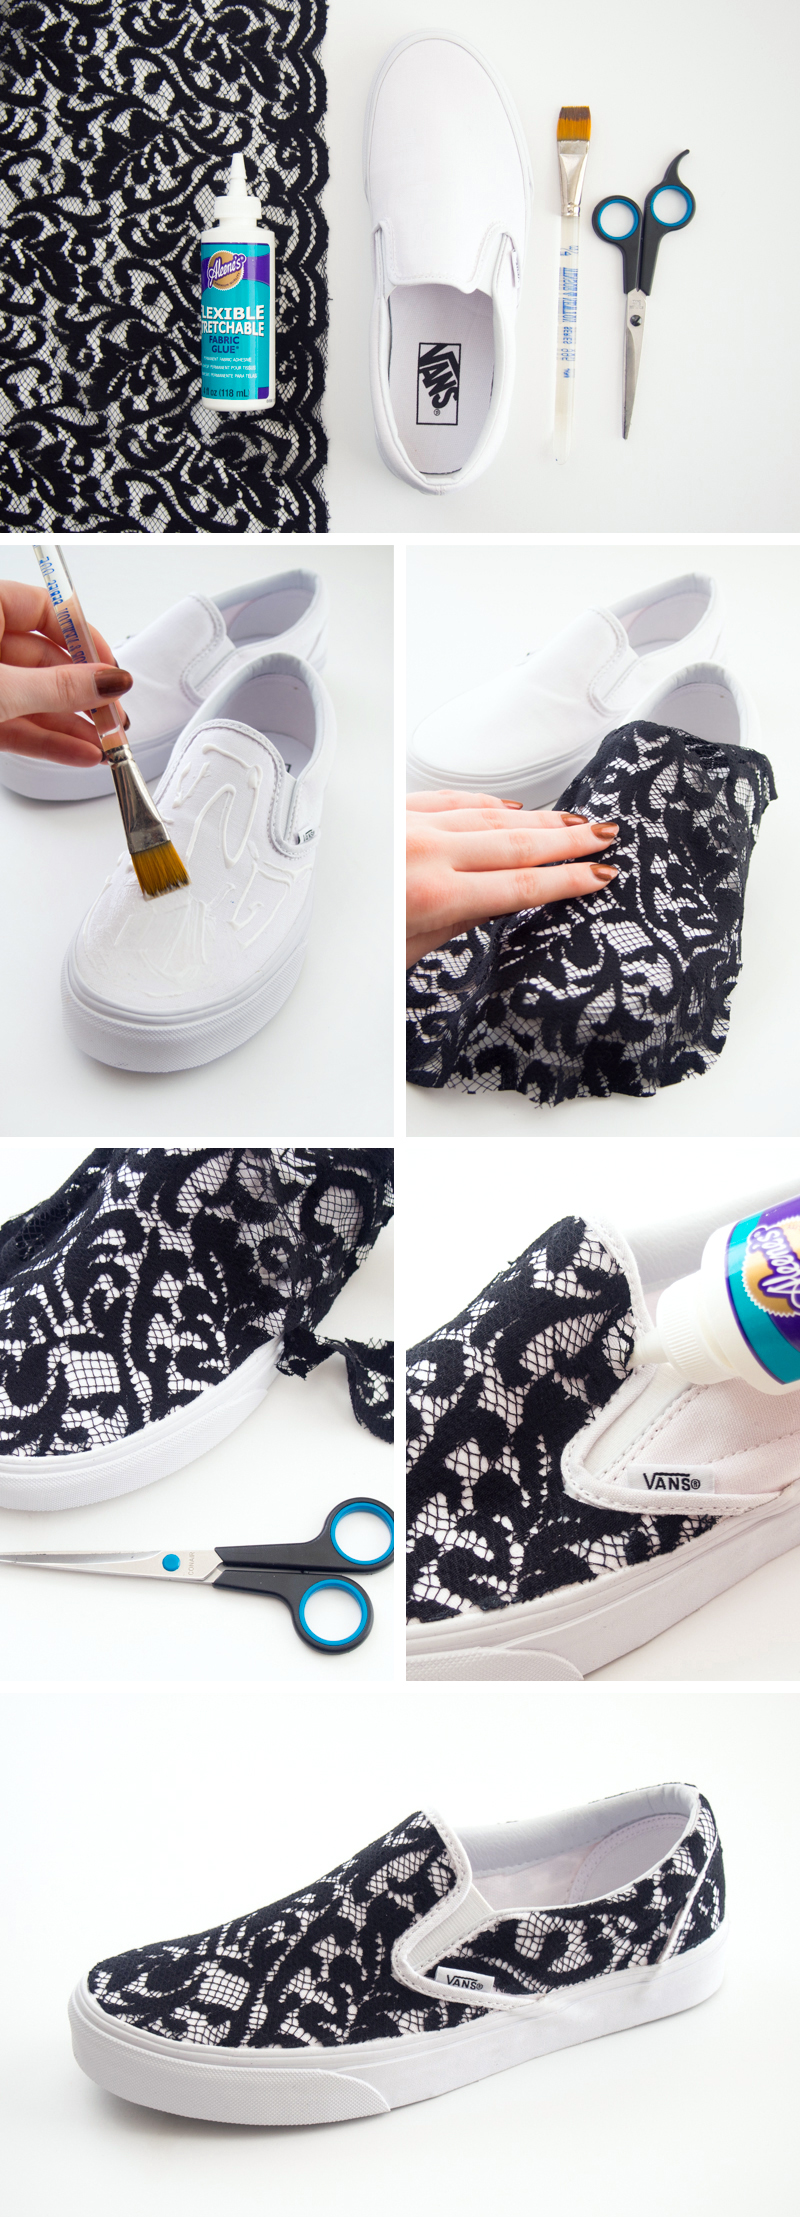 DIY Lace Covered Sneakers